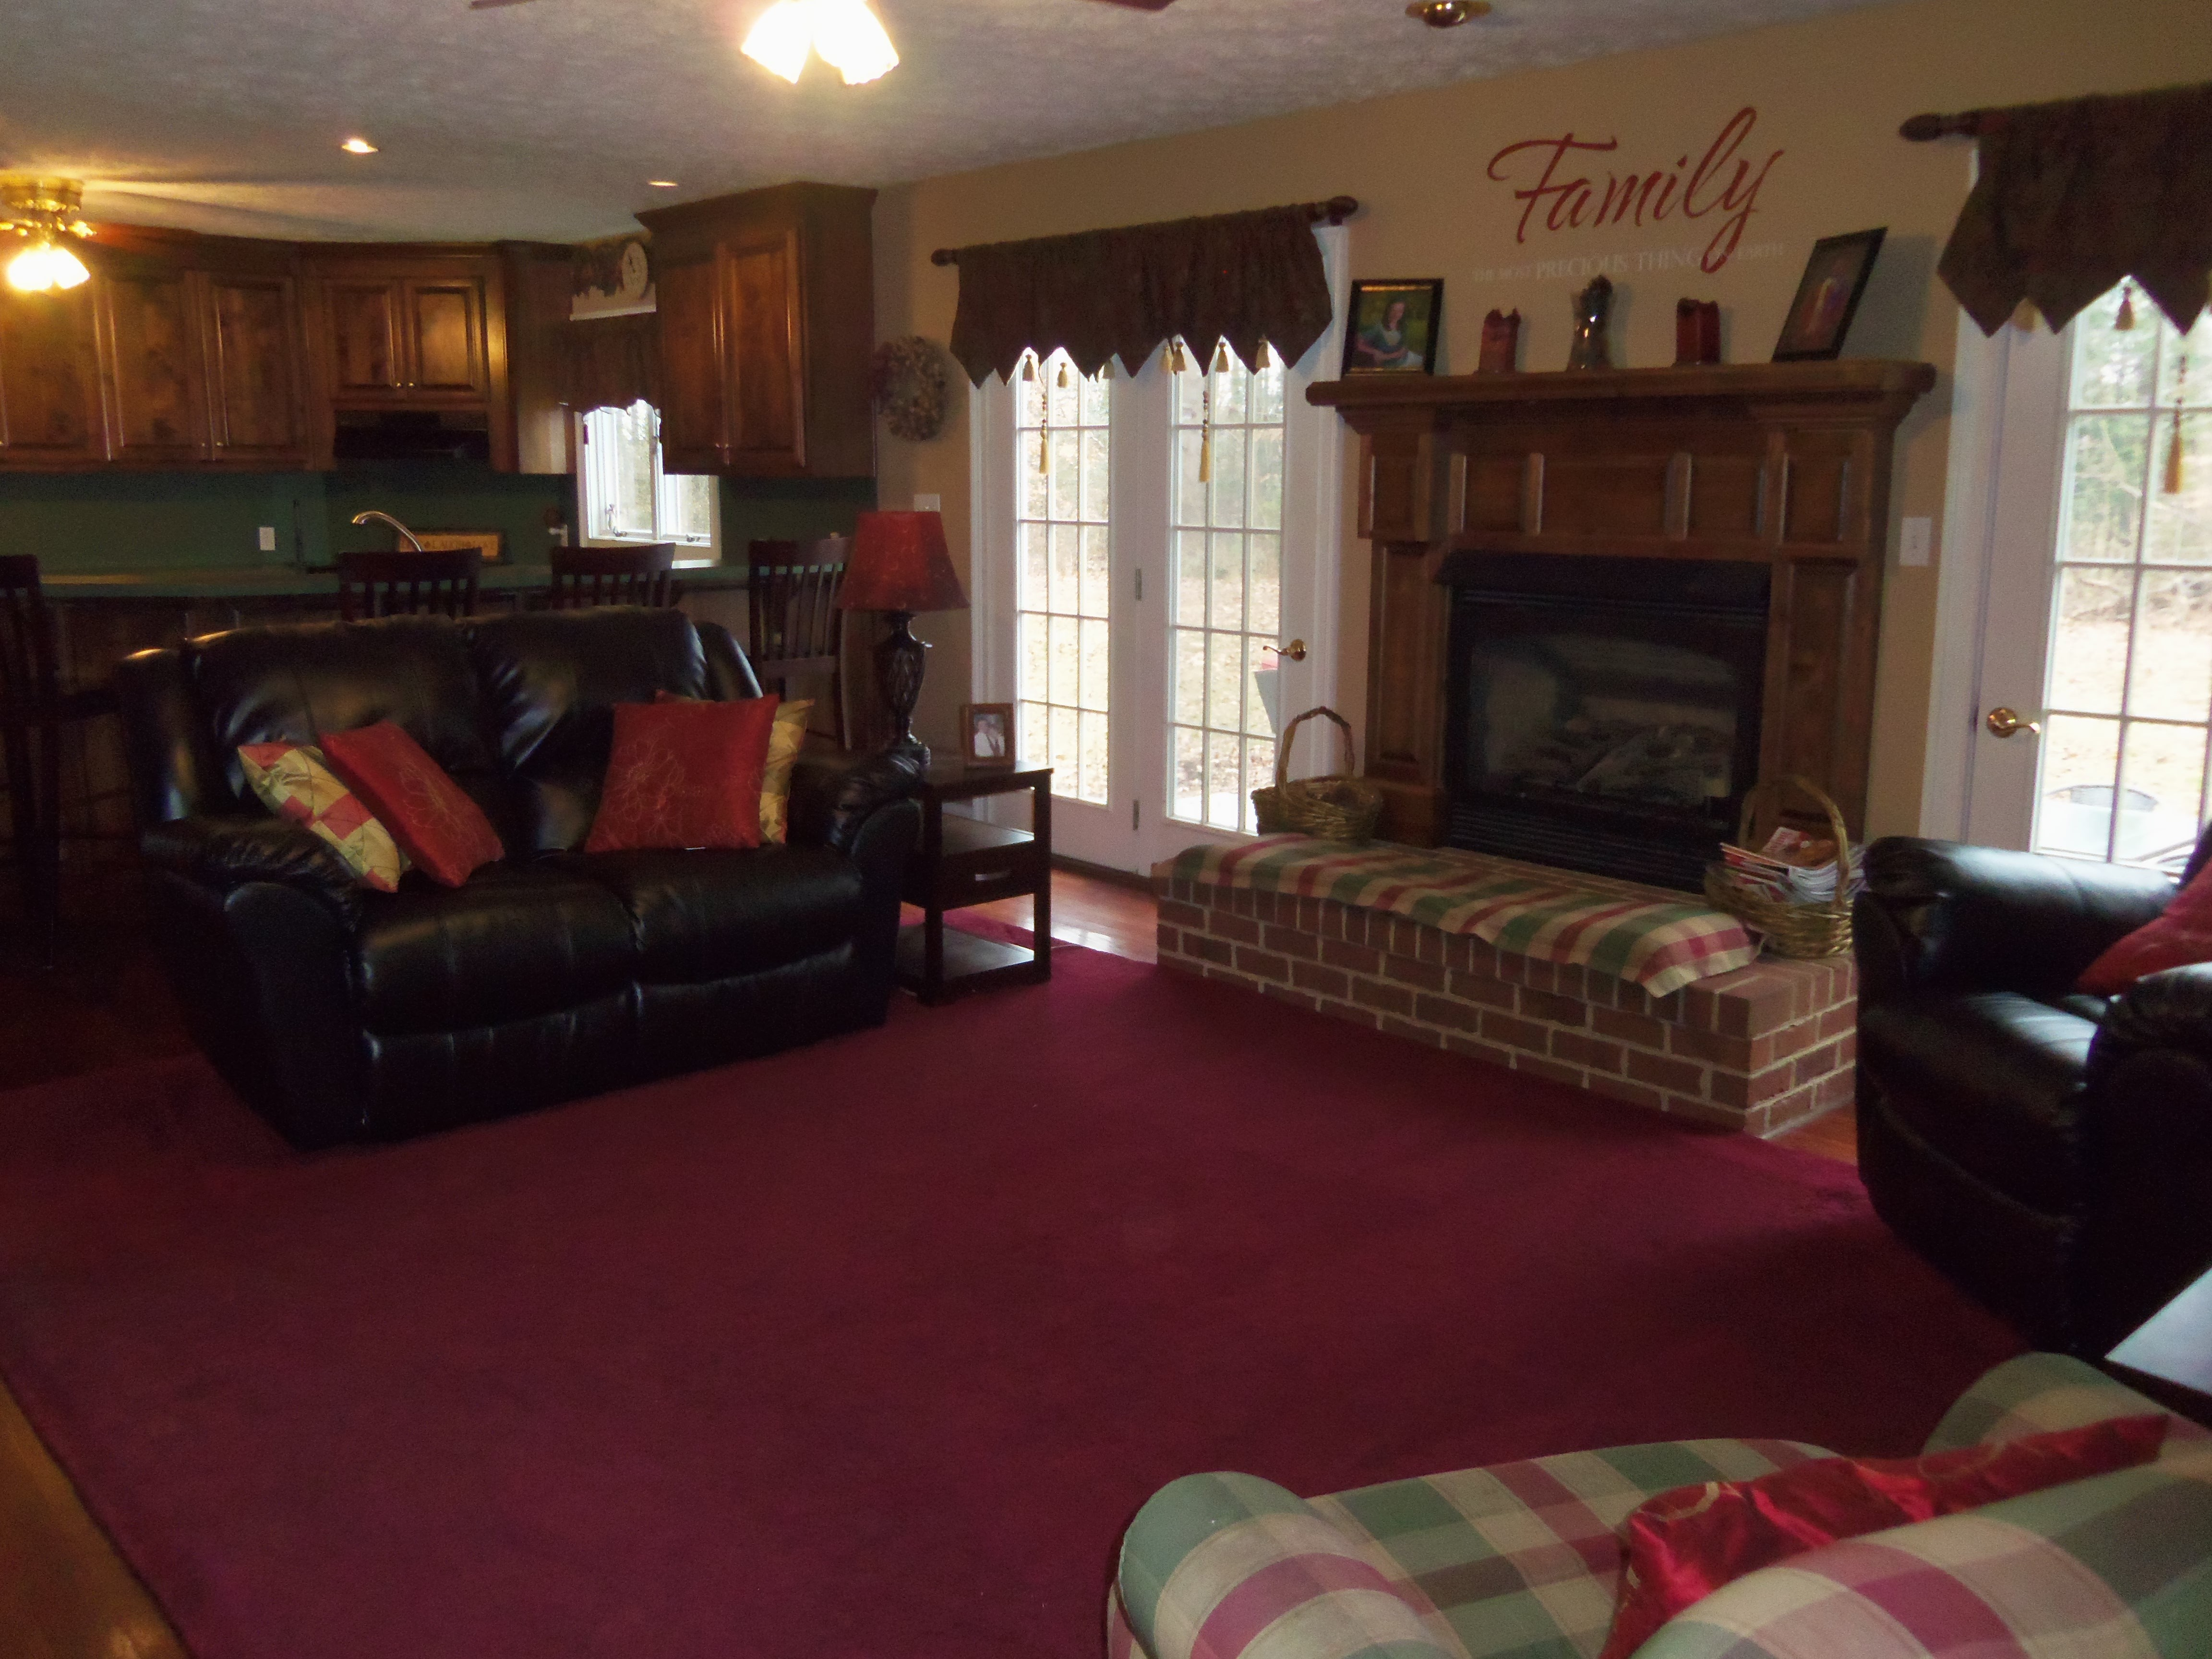 This photo was provided by Abbitt Realty Co., LLC. The house has an open floor plan.